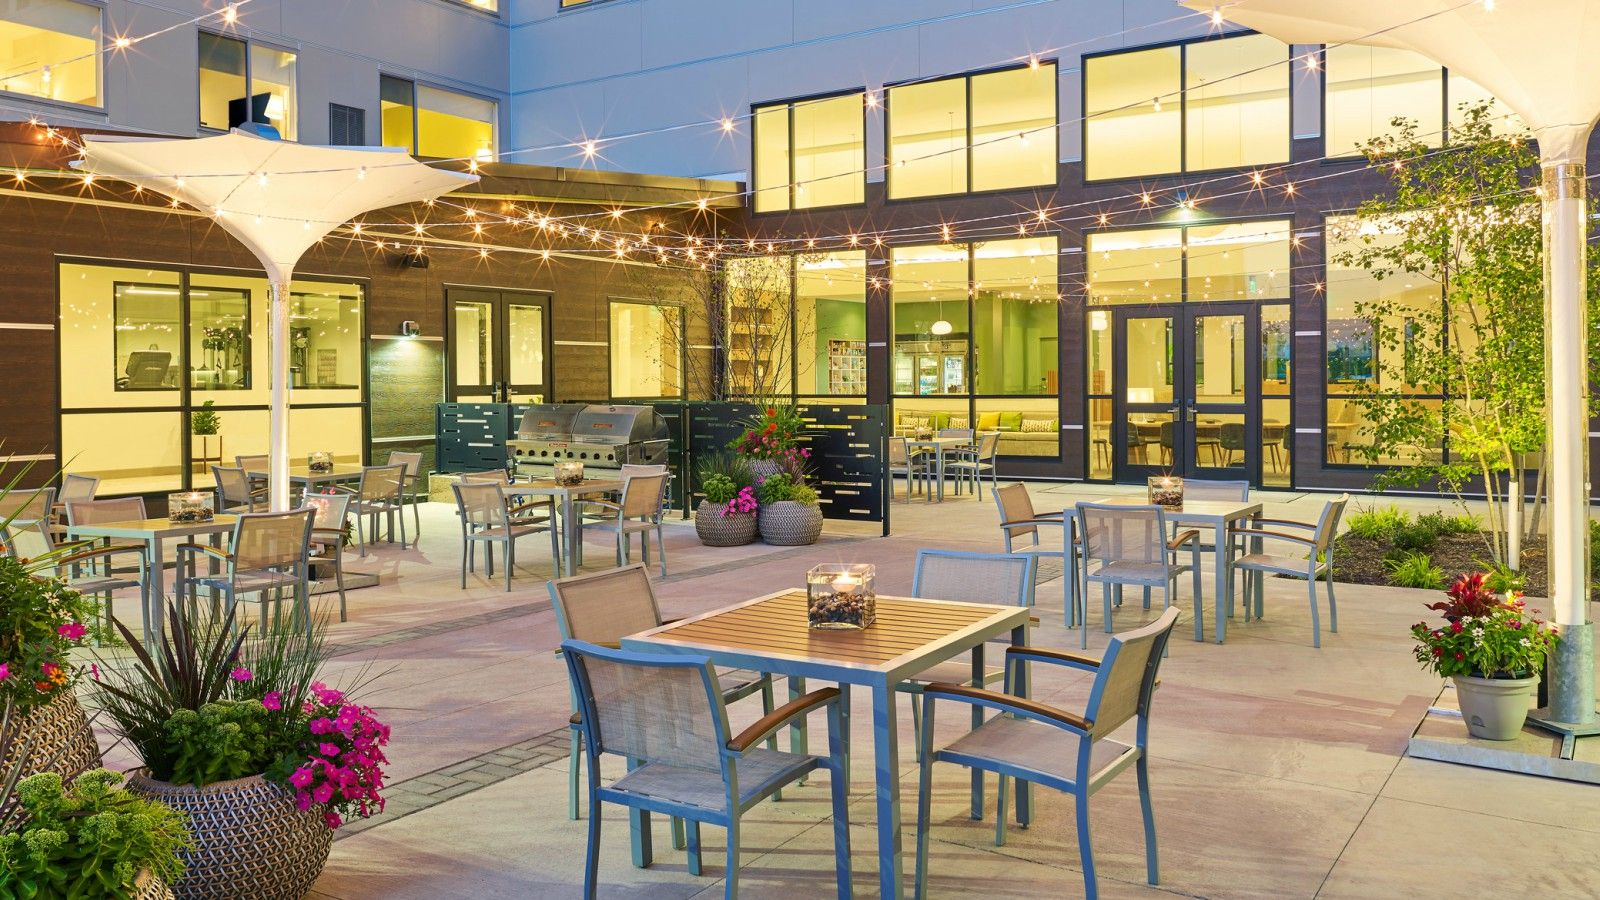 Wedding Venues Des Moines - Outdoor Patio